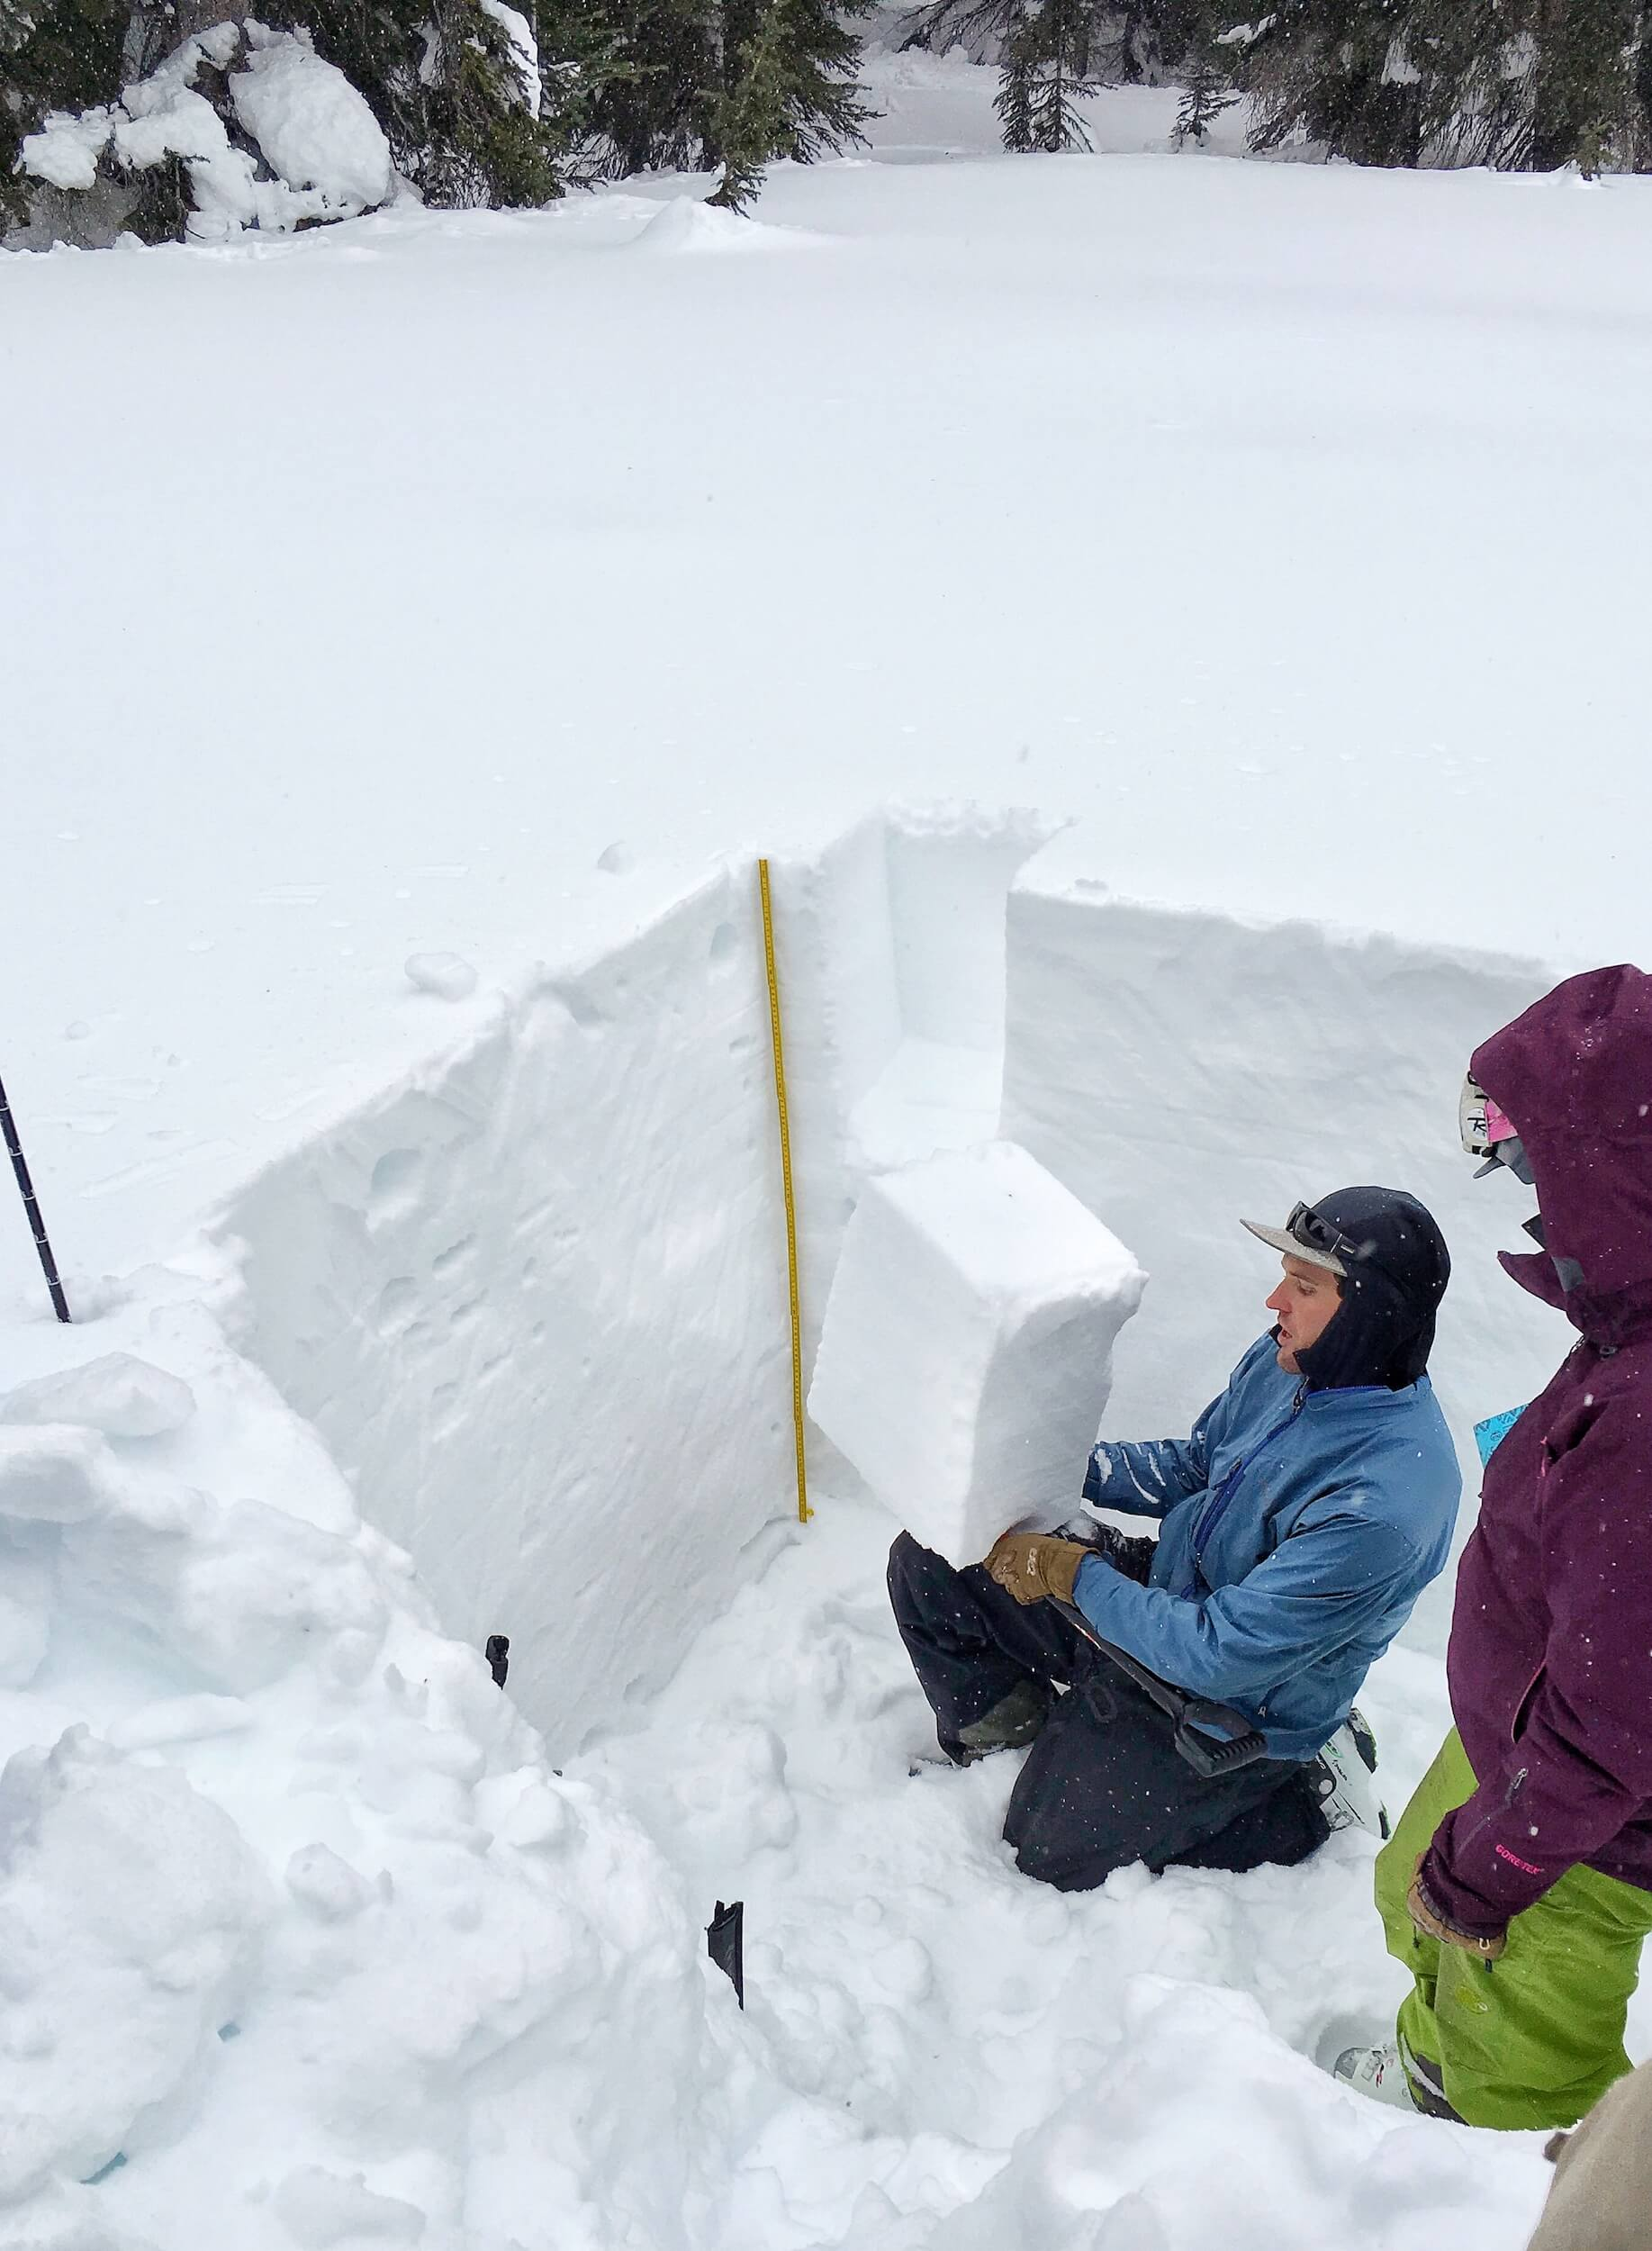 EXAMINING THE SNOW PACK